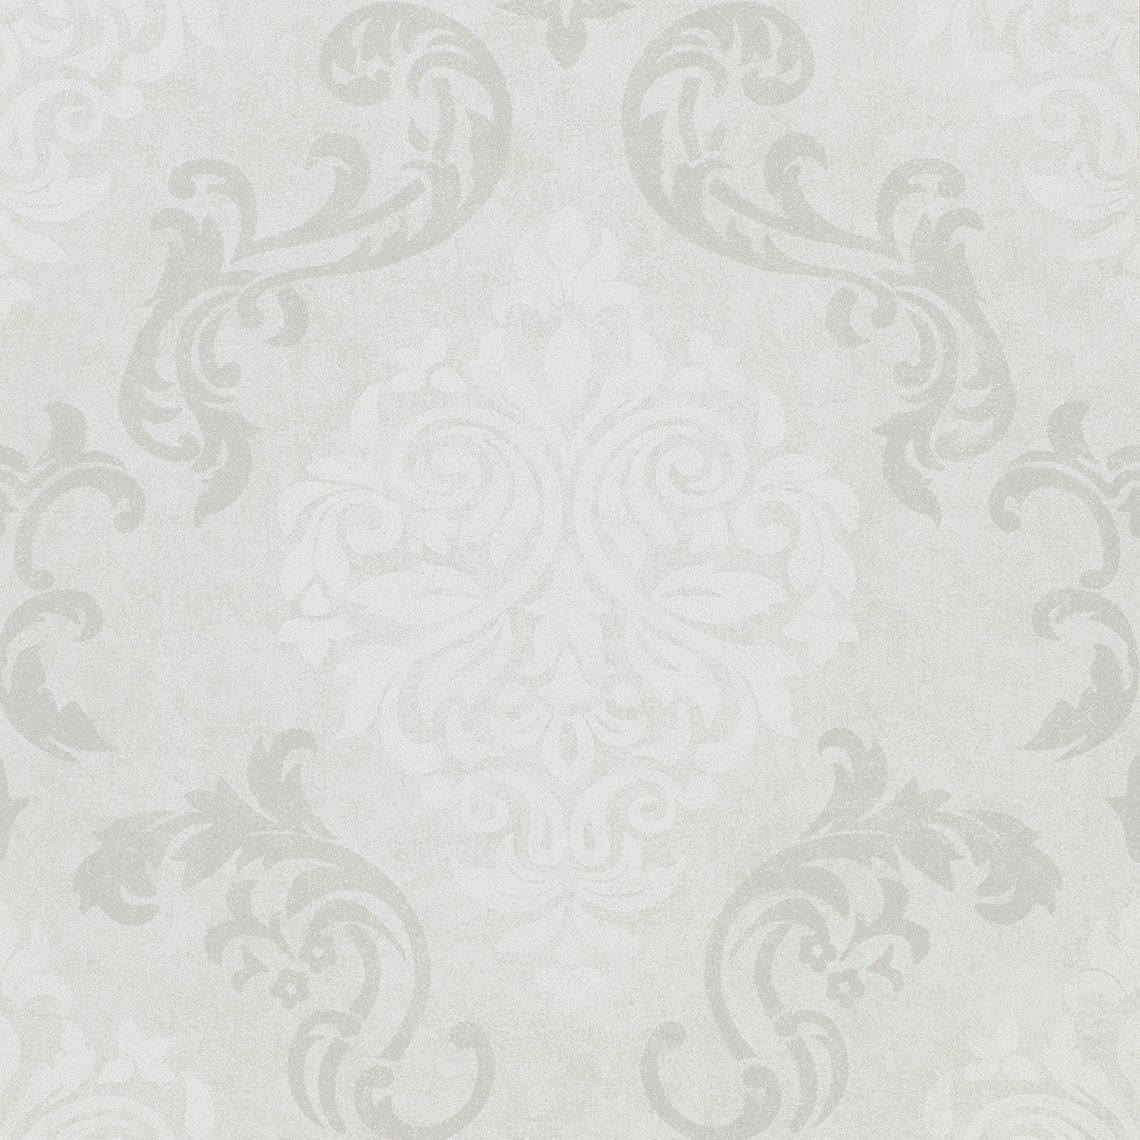 d licieux papier peint gris perle 4 papier peint damask expans sur intiss motif arabesque. Black Bedroom Furniture Sets. Home Design Ideas